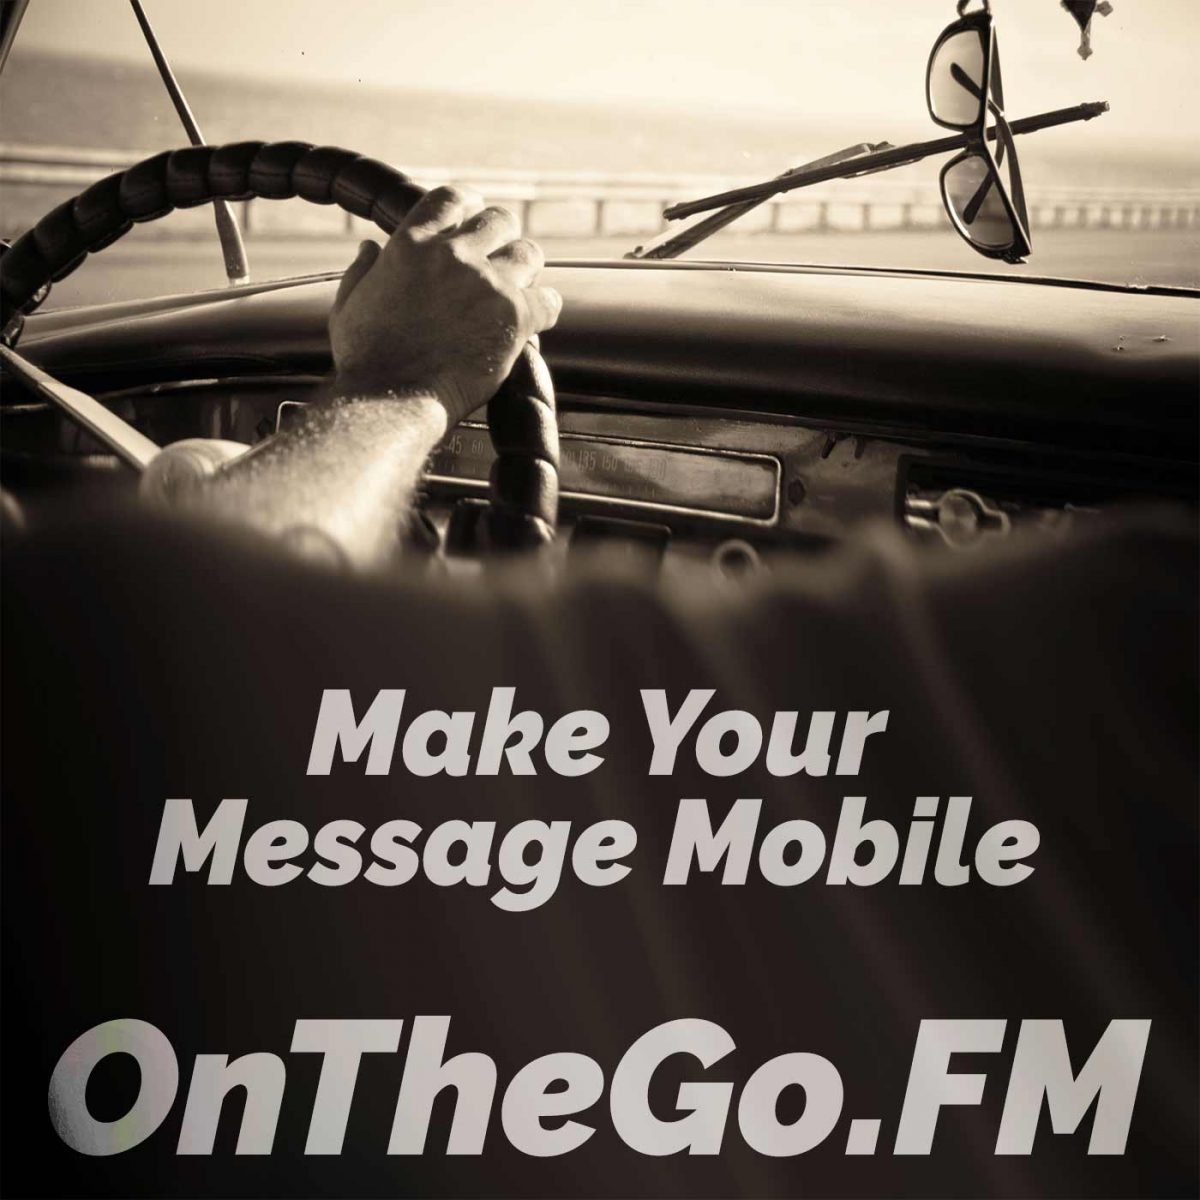 on-the-go-fm-make-your-message-mobile-1400